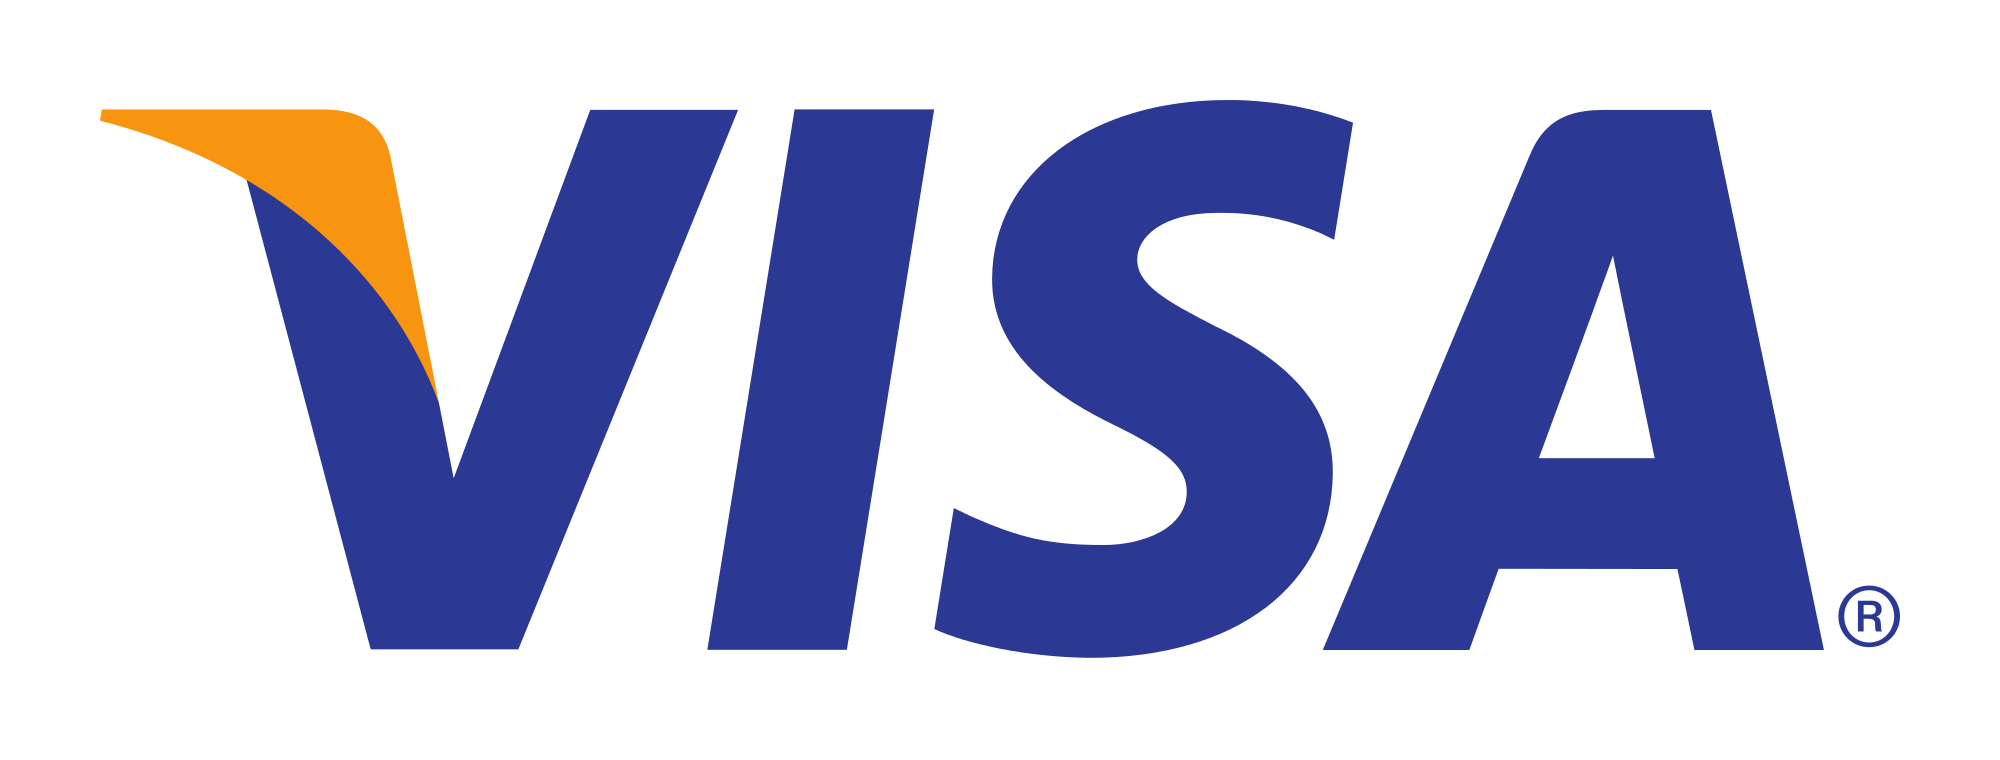 Visa_Inc._logo.svg